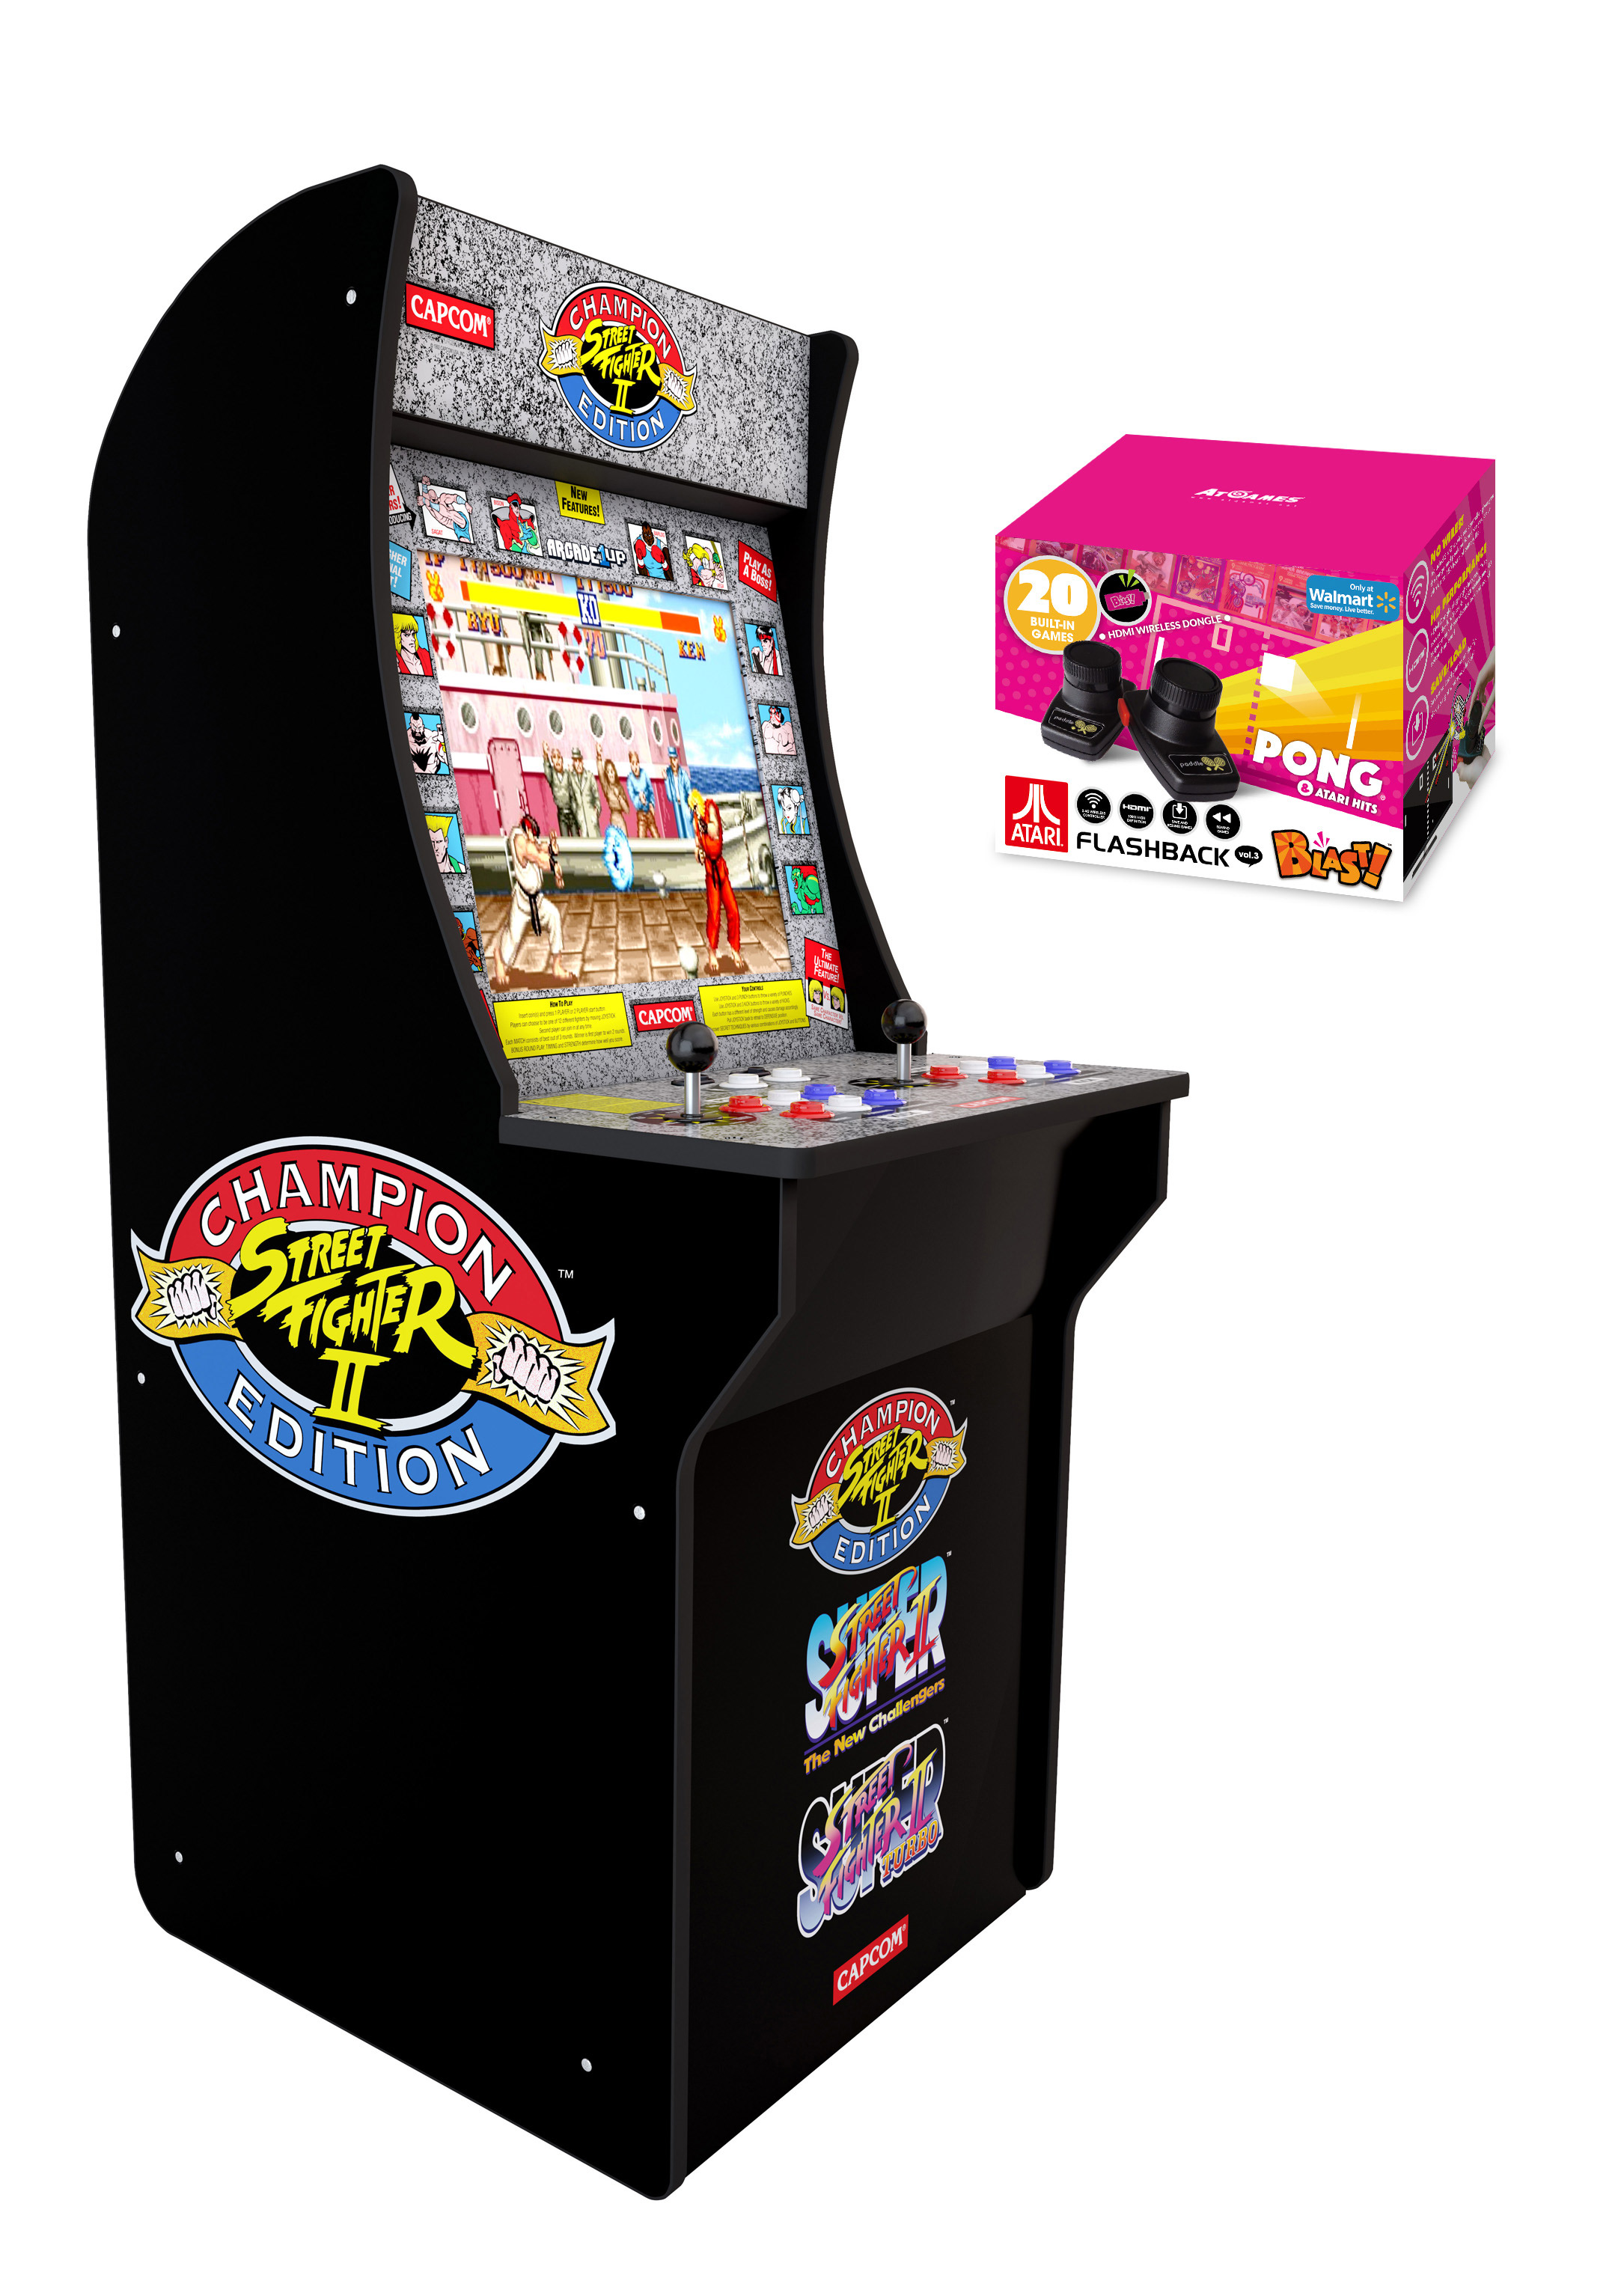 $50 off Arcade1Up: Street Fighter 2 Arcade Cabinets (4 ft